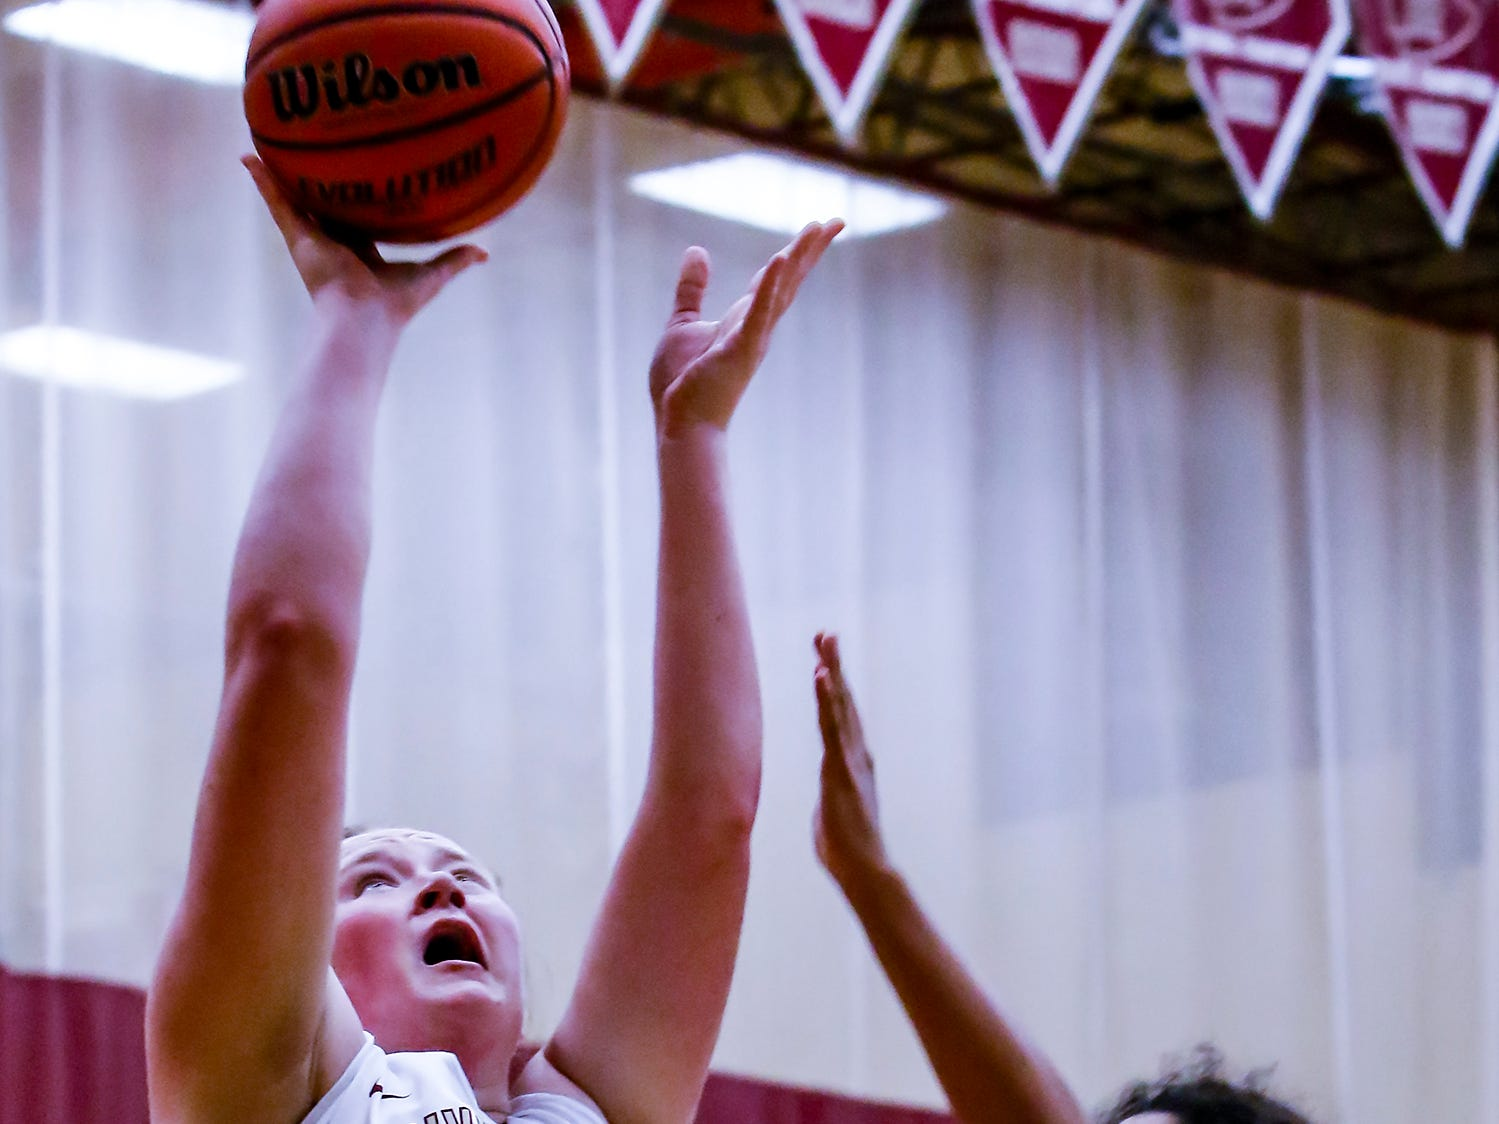 Riverdale's Katelyn Worley goes in for a layup during Thursday's State Farm Classic win.